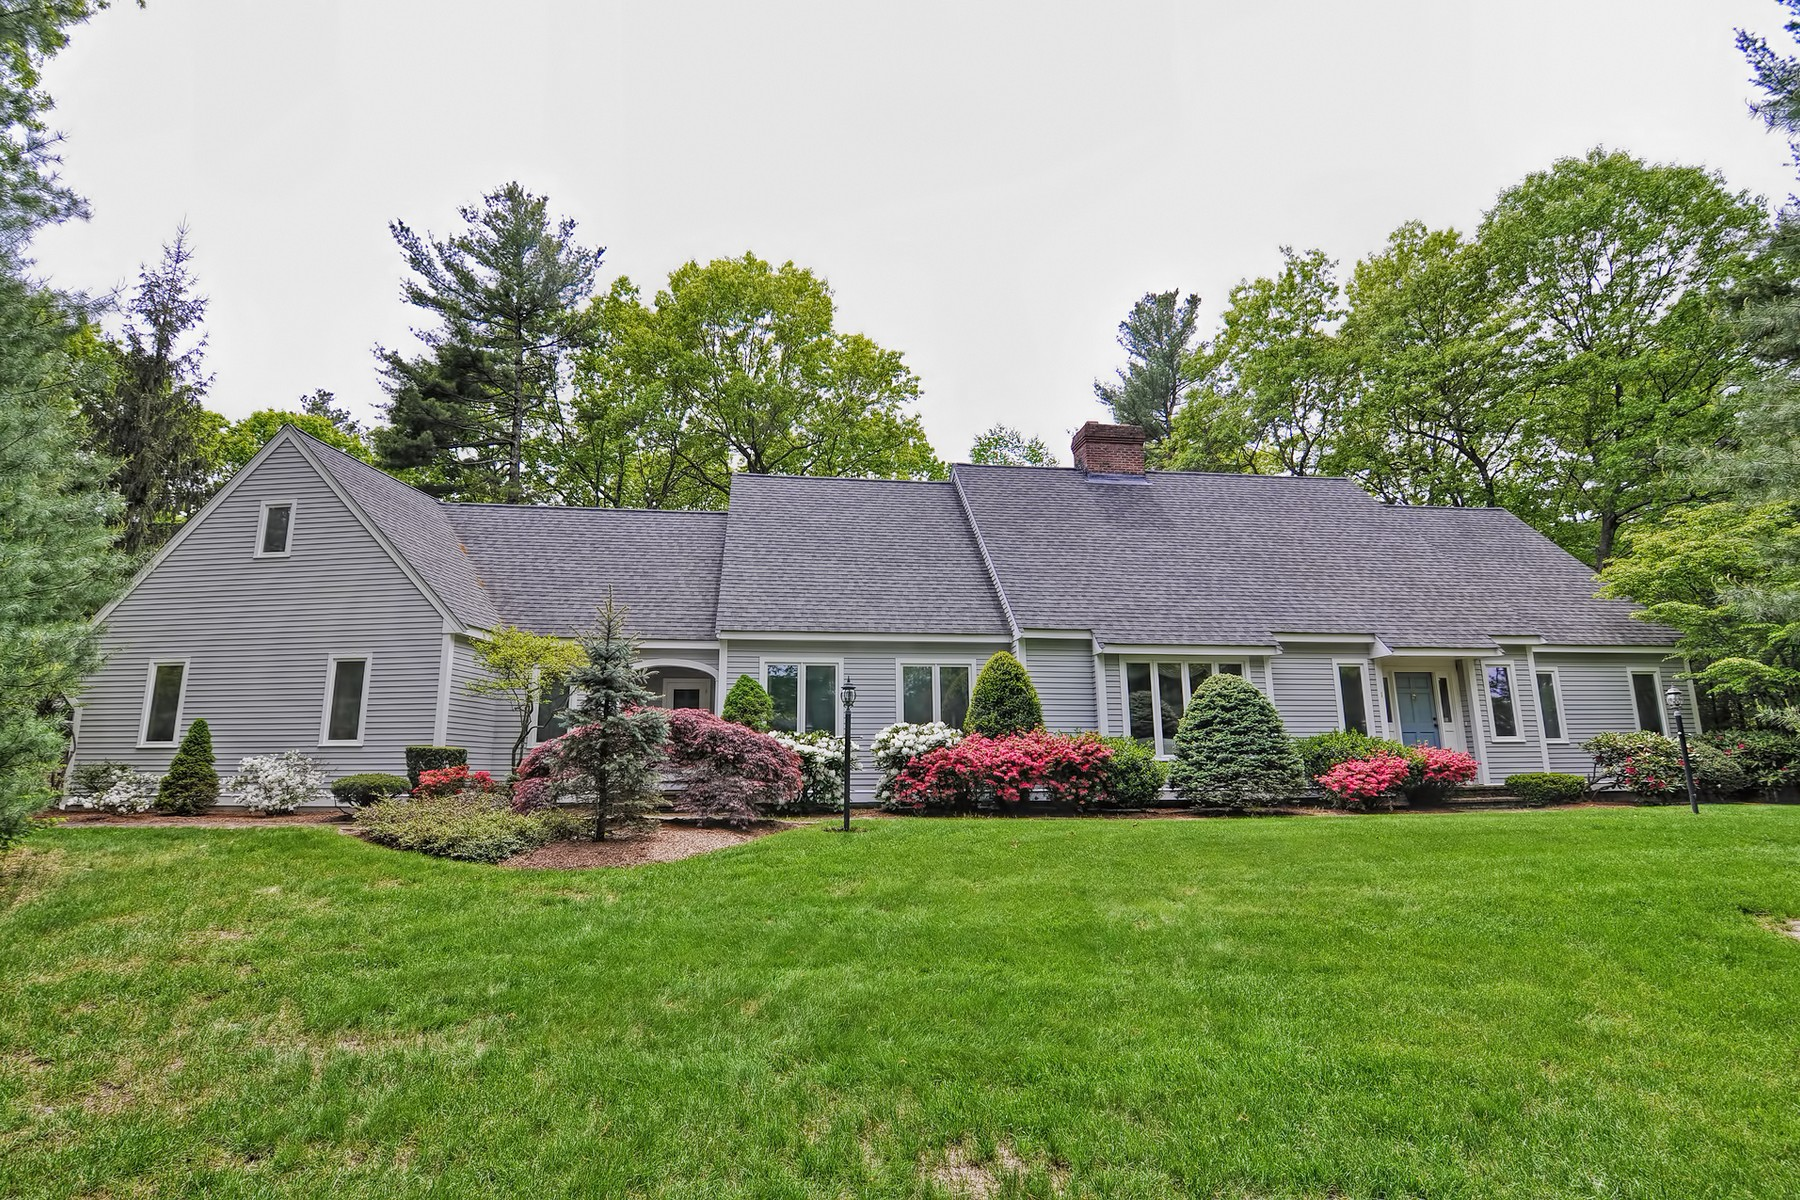 Single Family Home for Sale at Sprawling Cape 1 Gina Dr Hopkinton, Massachusetts 01748 United States